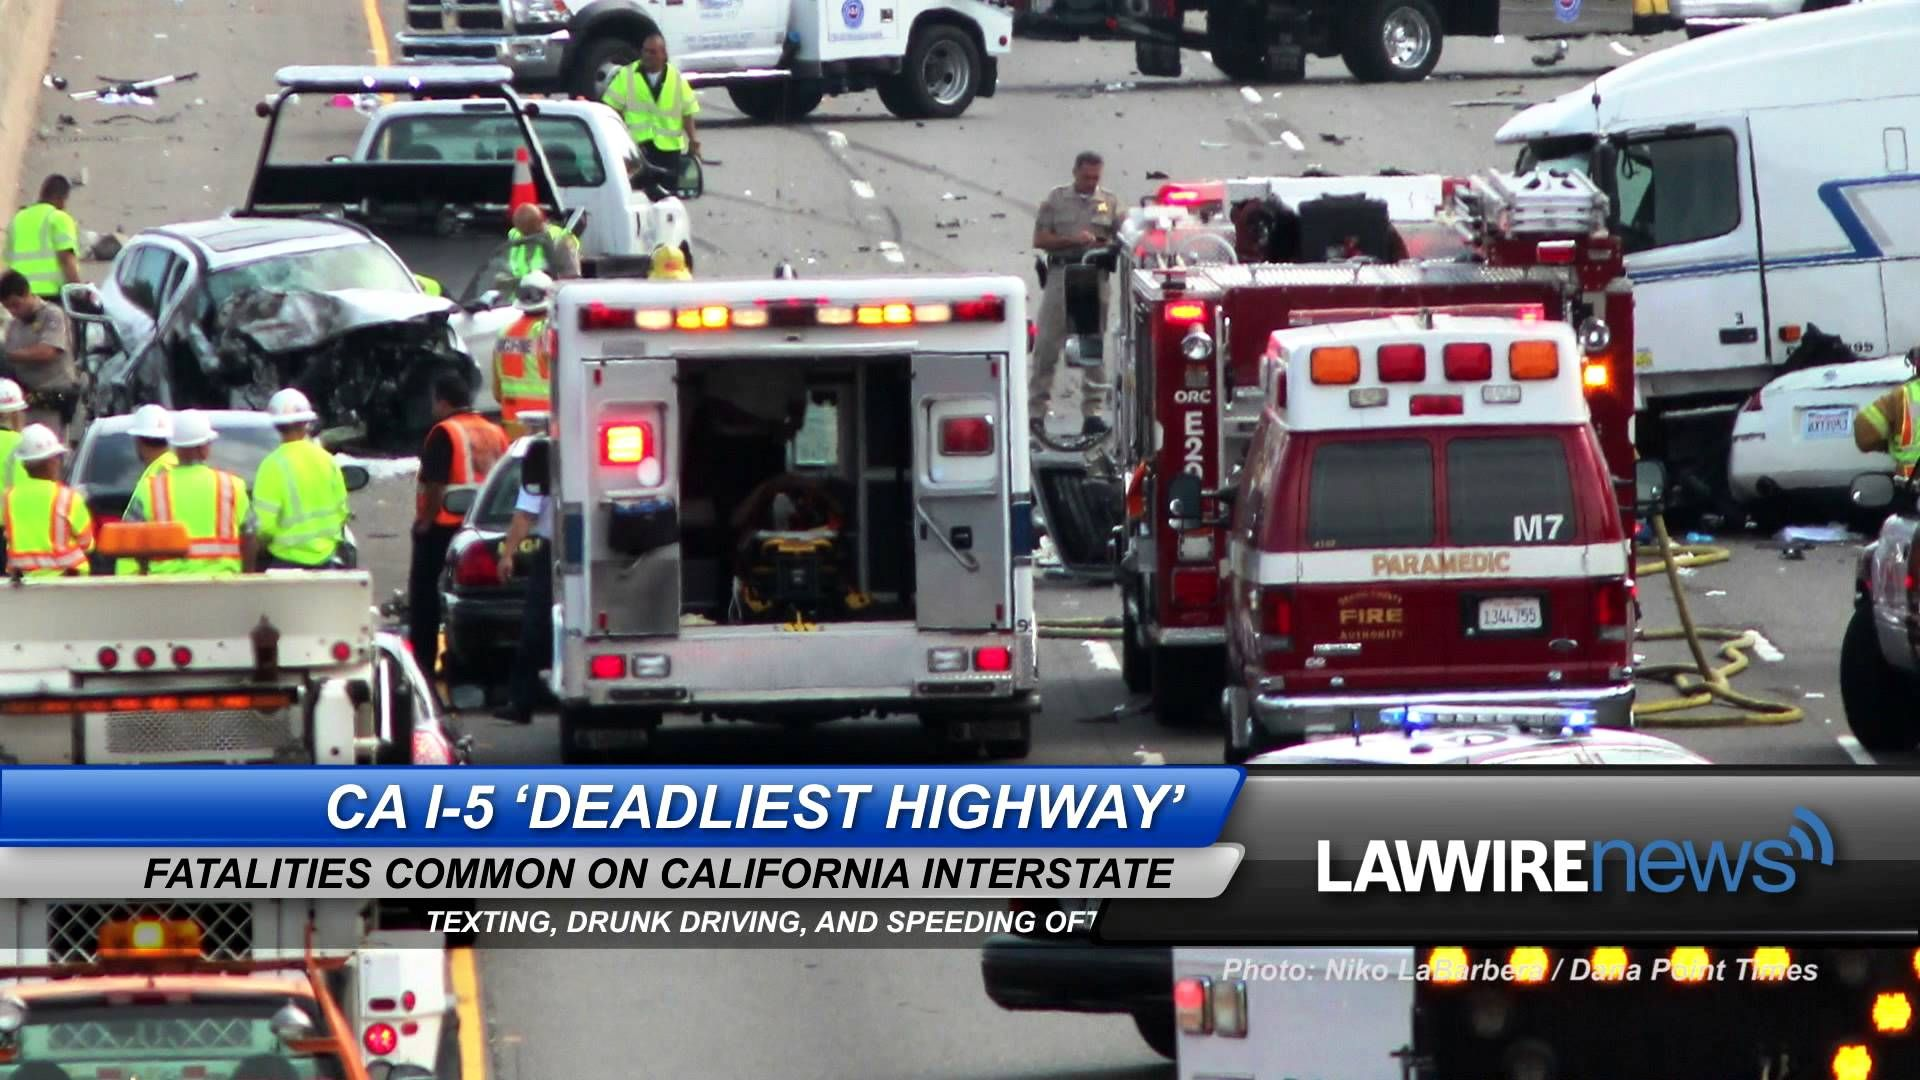 CA I-5 'Deadliest Highway' | Law Wire News | July 2015